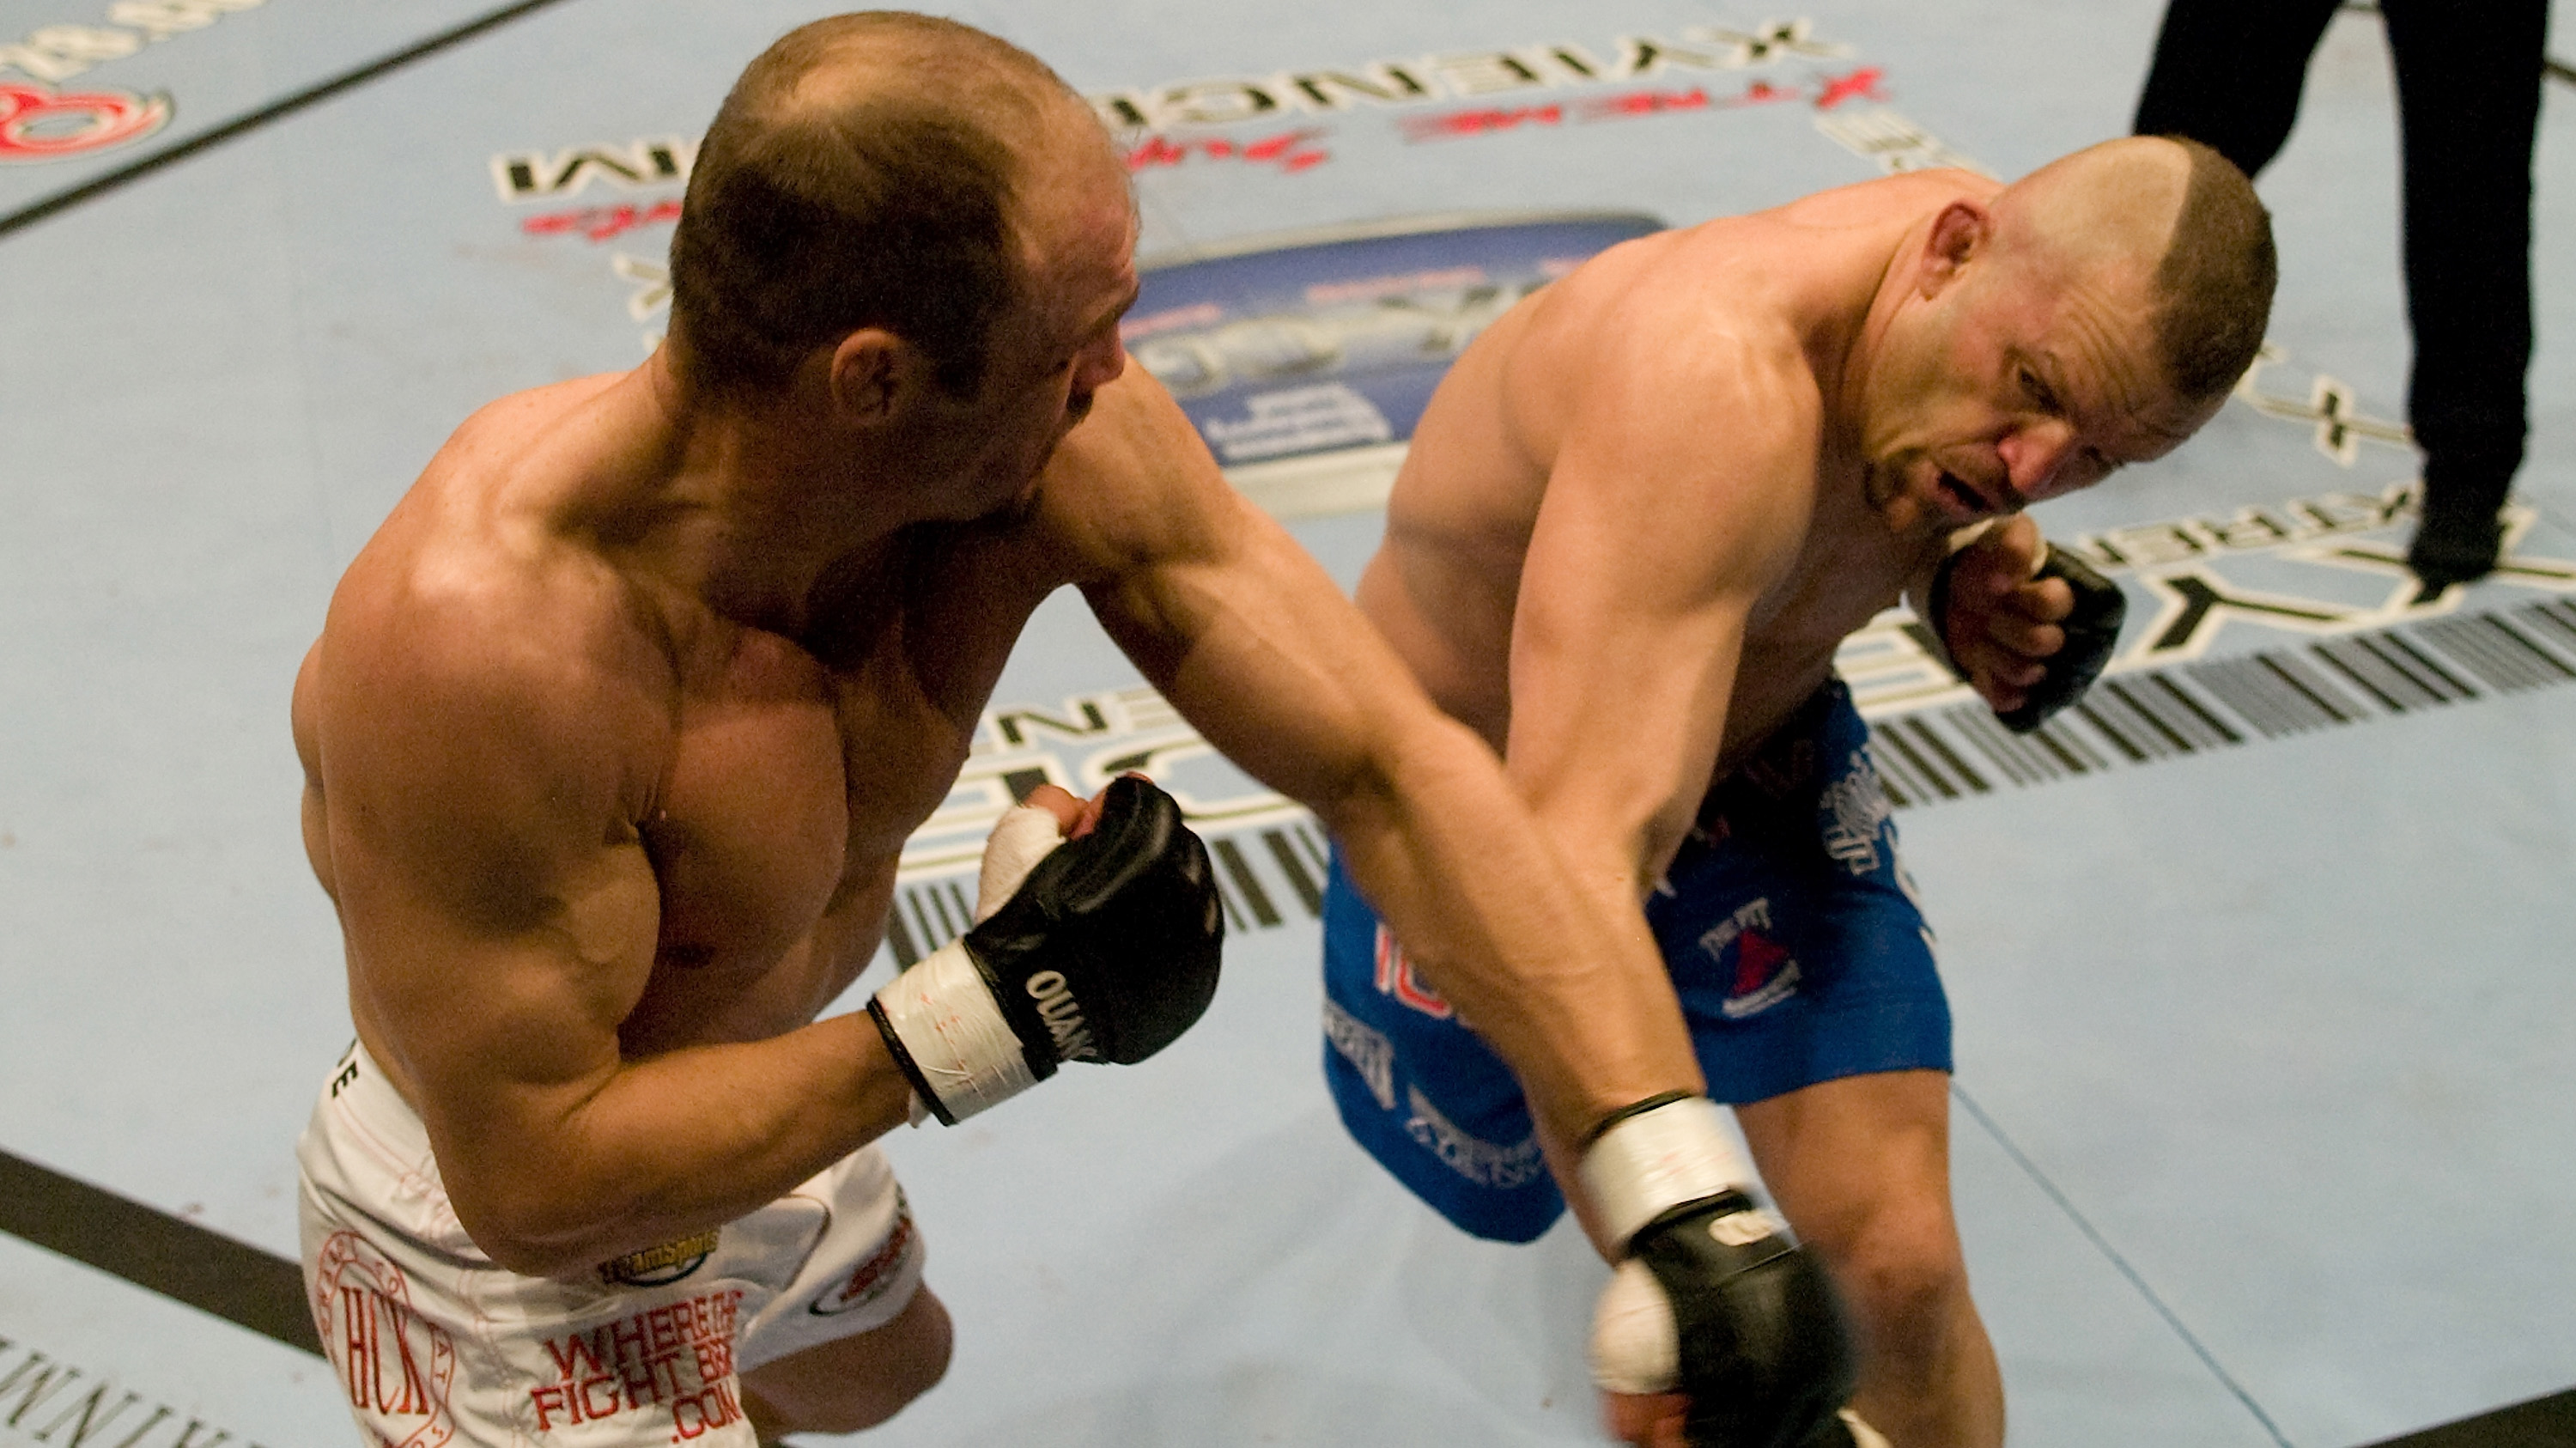 LAS VEGAS, NV - APRIL 16:  (L-R) Randy Couture and Chuck Liddell trade punches at <a href='../event/UFC-52-Couture-vs-Liddell-II'>UFC 52 </a>at the MGM Grand Garden Arena on April 16, 2005 in Las Vegas, Nevada. (Photo by Josh Hedges/Zuffa LLC)